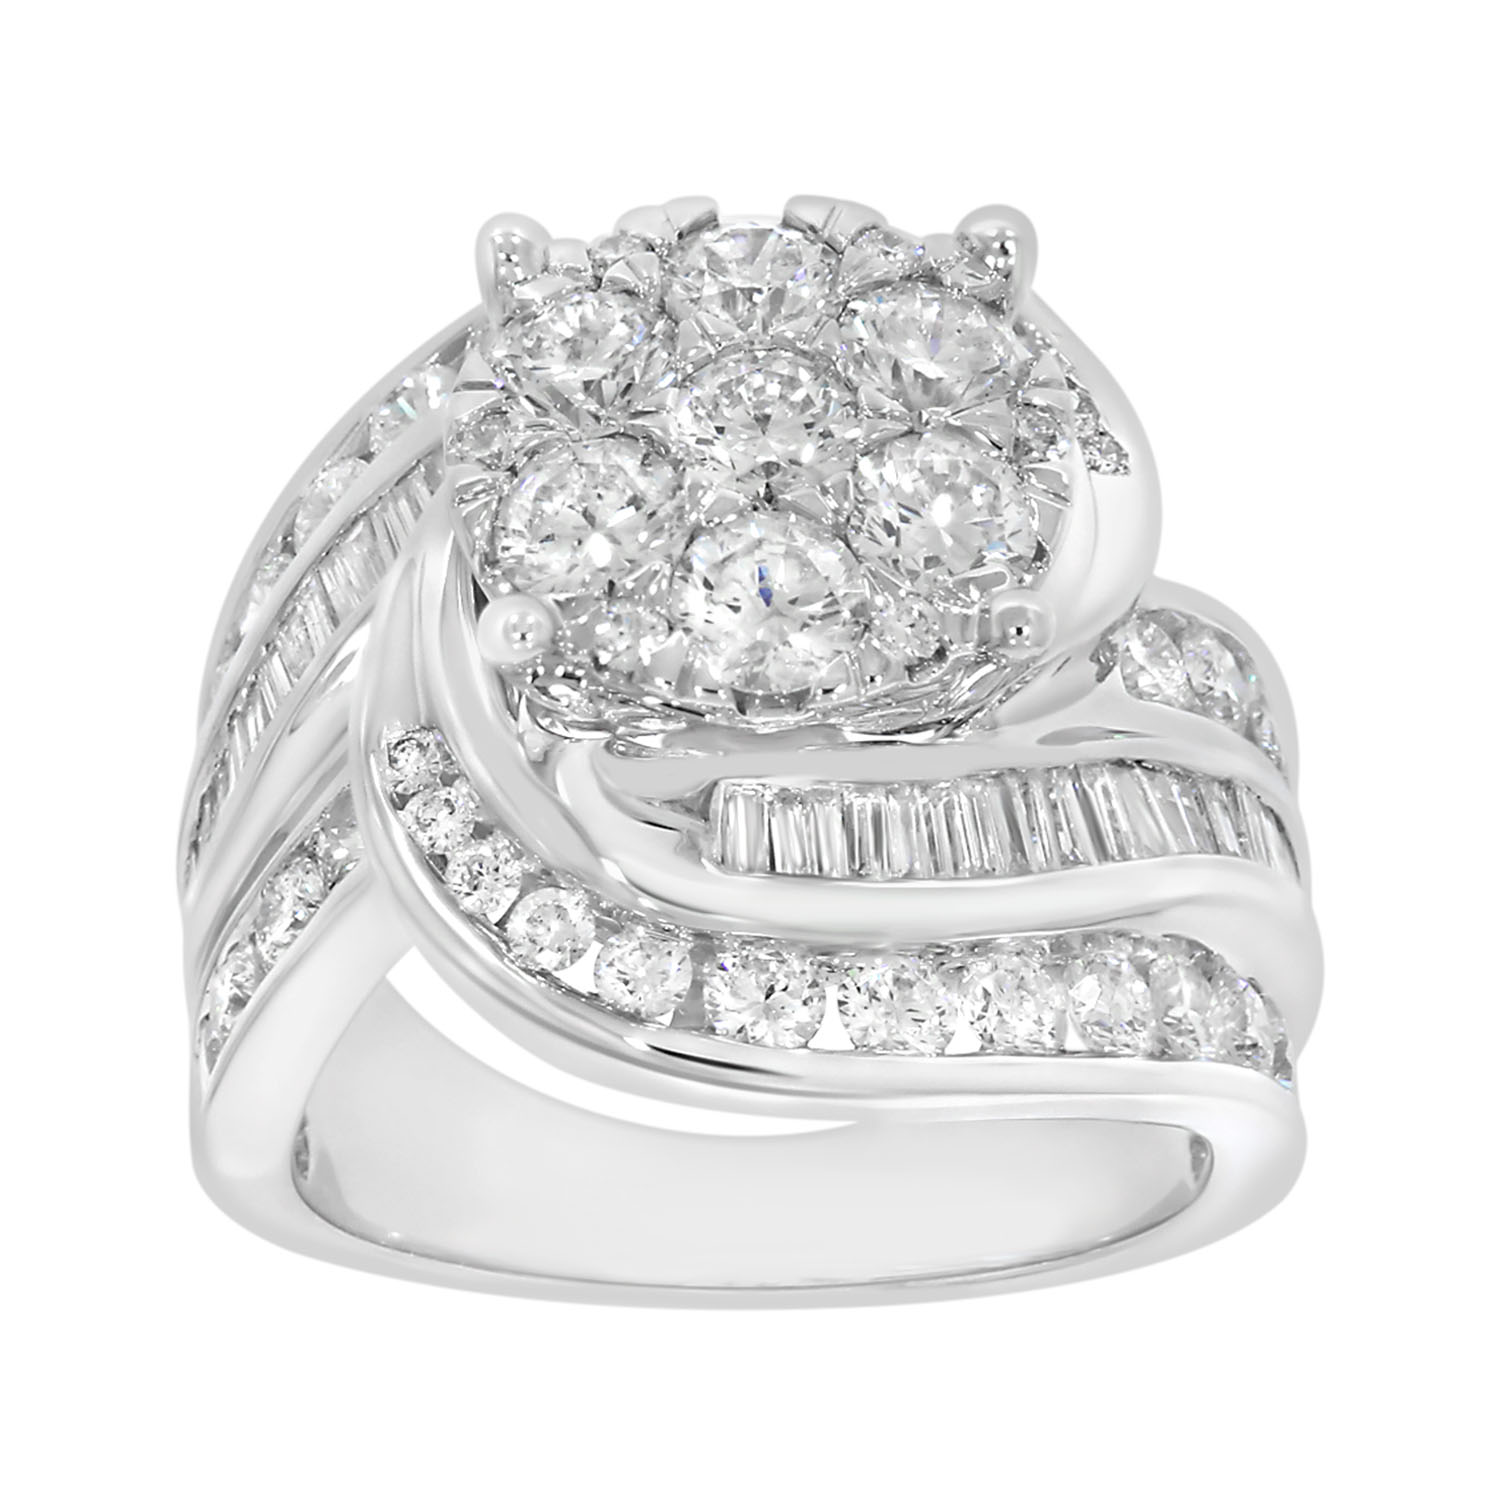 18ct White Gold 2 Carat Diamond Ring